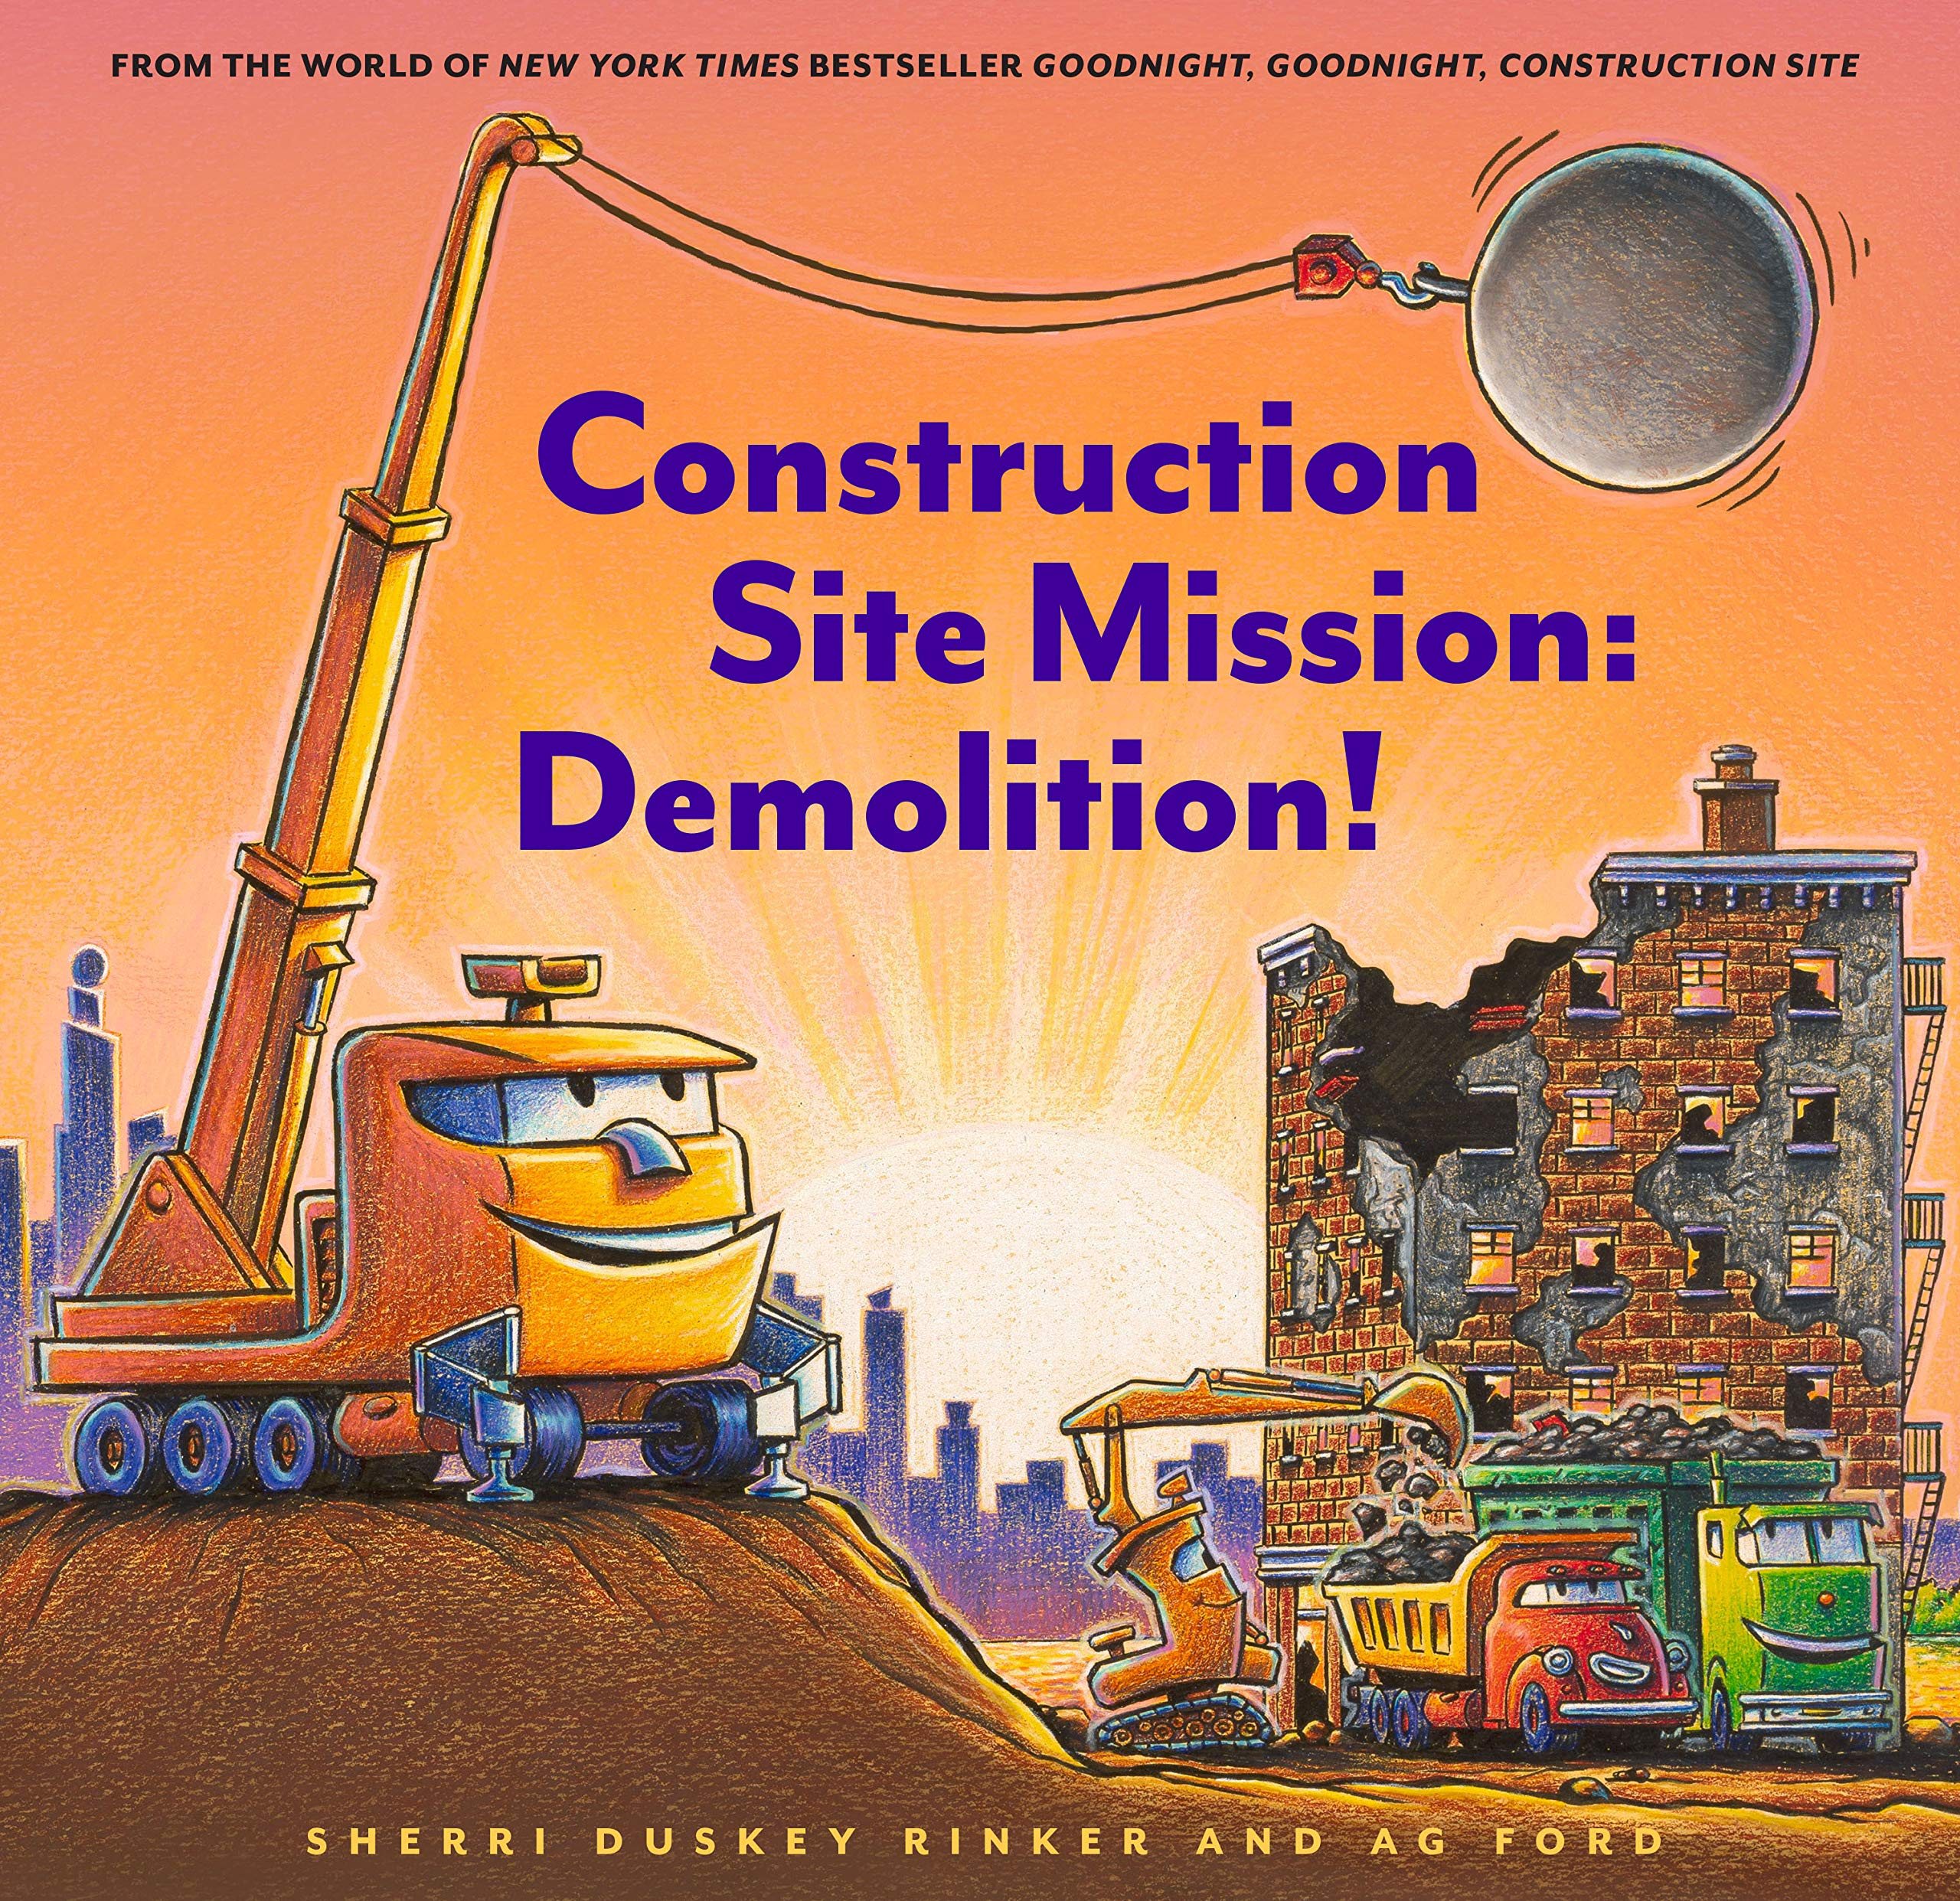 A picture book featuring a crane truck with a wrecking ball in the foreground, while other construction vehicles work near an old building in the background.